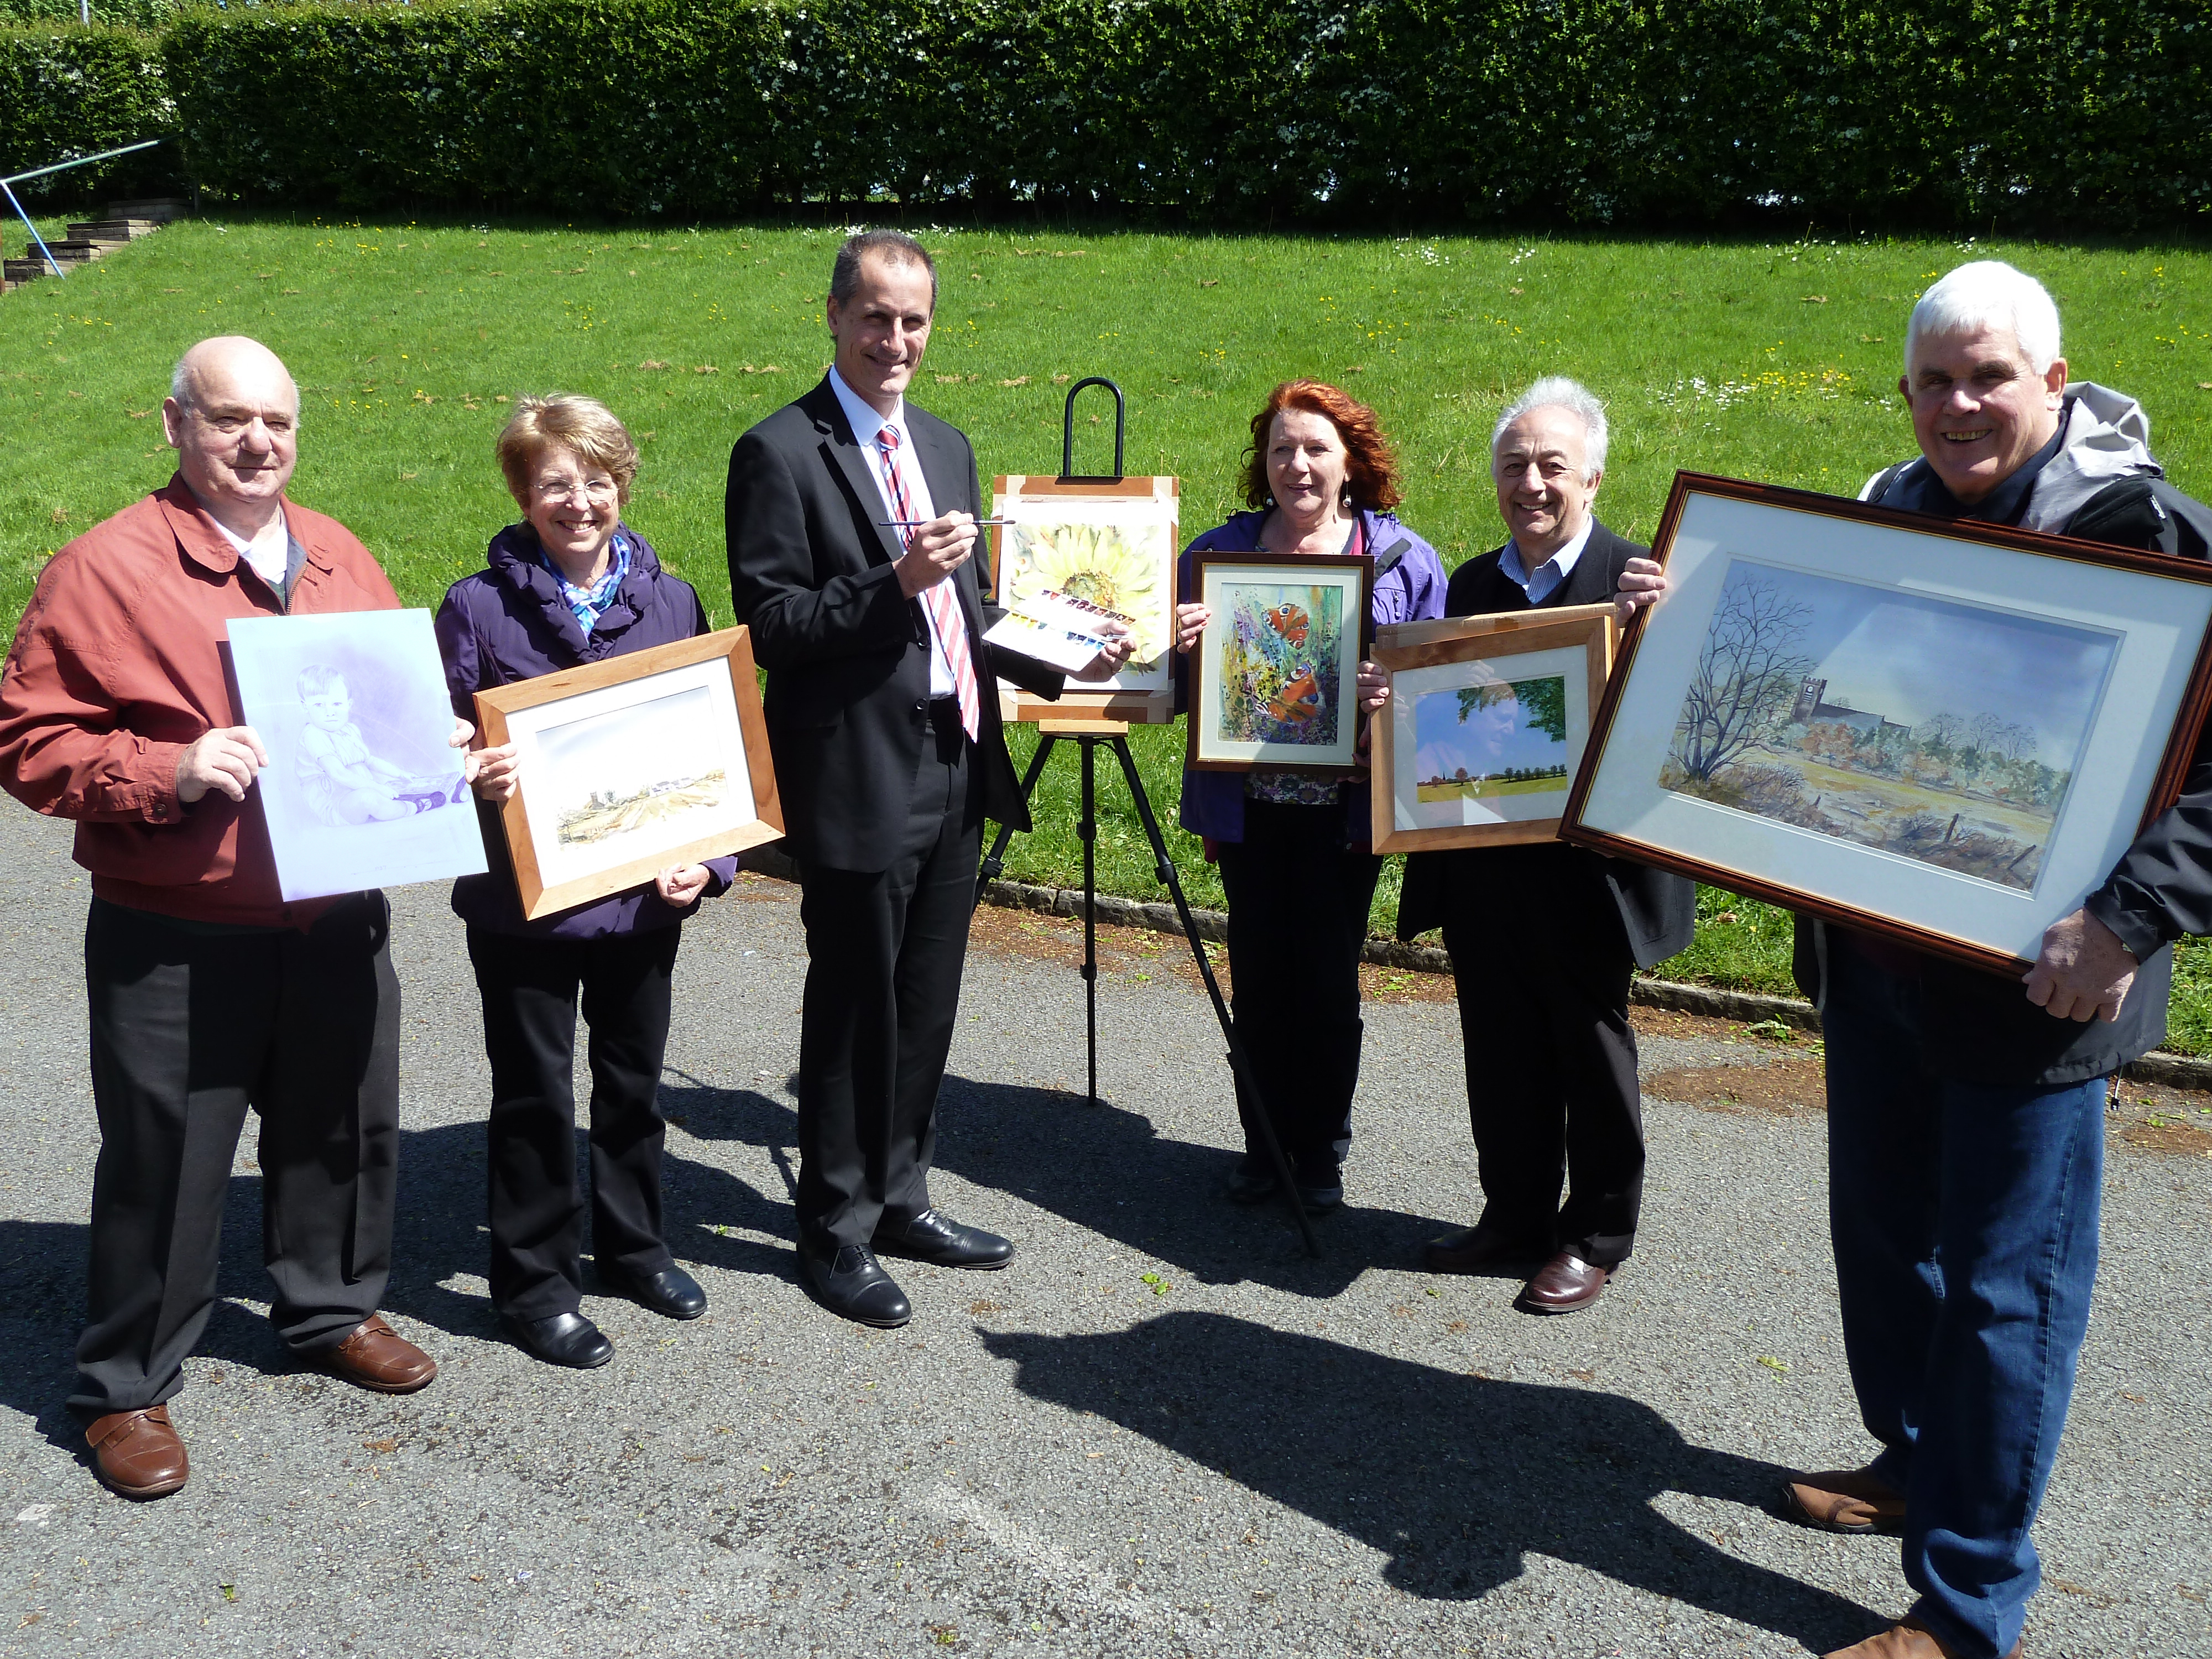 Sefton Central Labour MP Bill Esterson tries out his artistic skills with Maghull Art Group's Ted Reddy, Di Pearson, Lelia Howarth, Tony Rimmer and Bob Joy ahead of the group's exhibition.